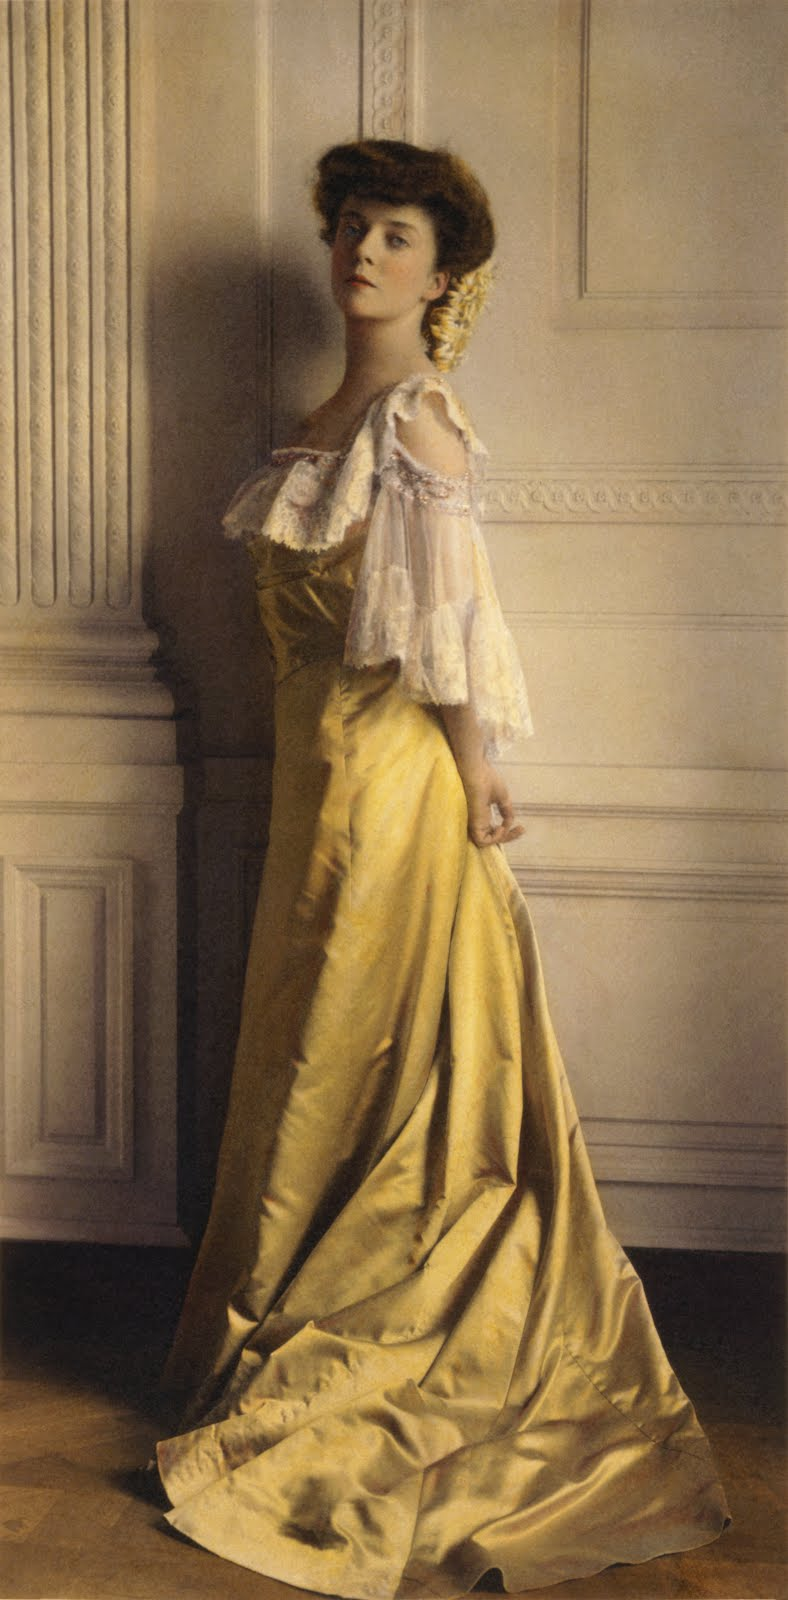 Alice Lee Roosevelt Longworth. Beautiful Portrait in a yellow dress. 1903